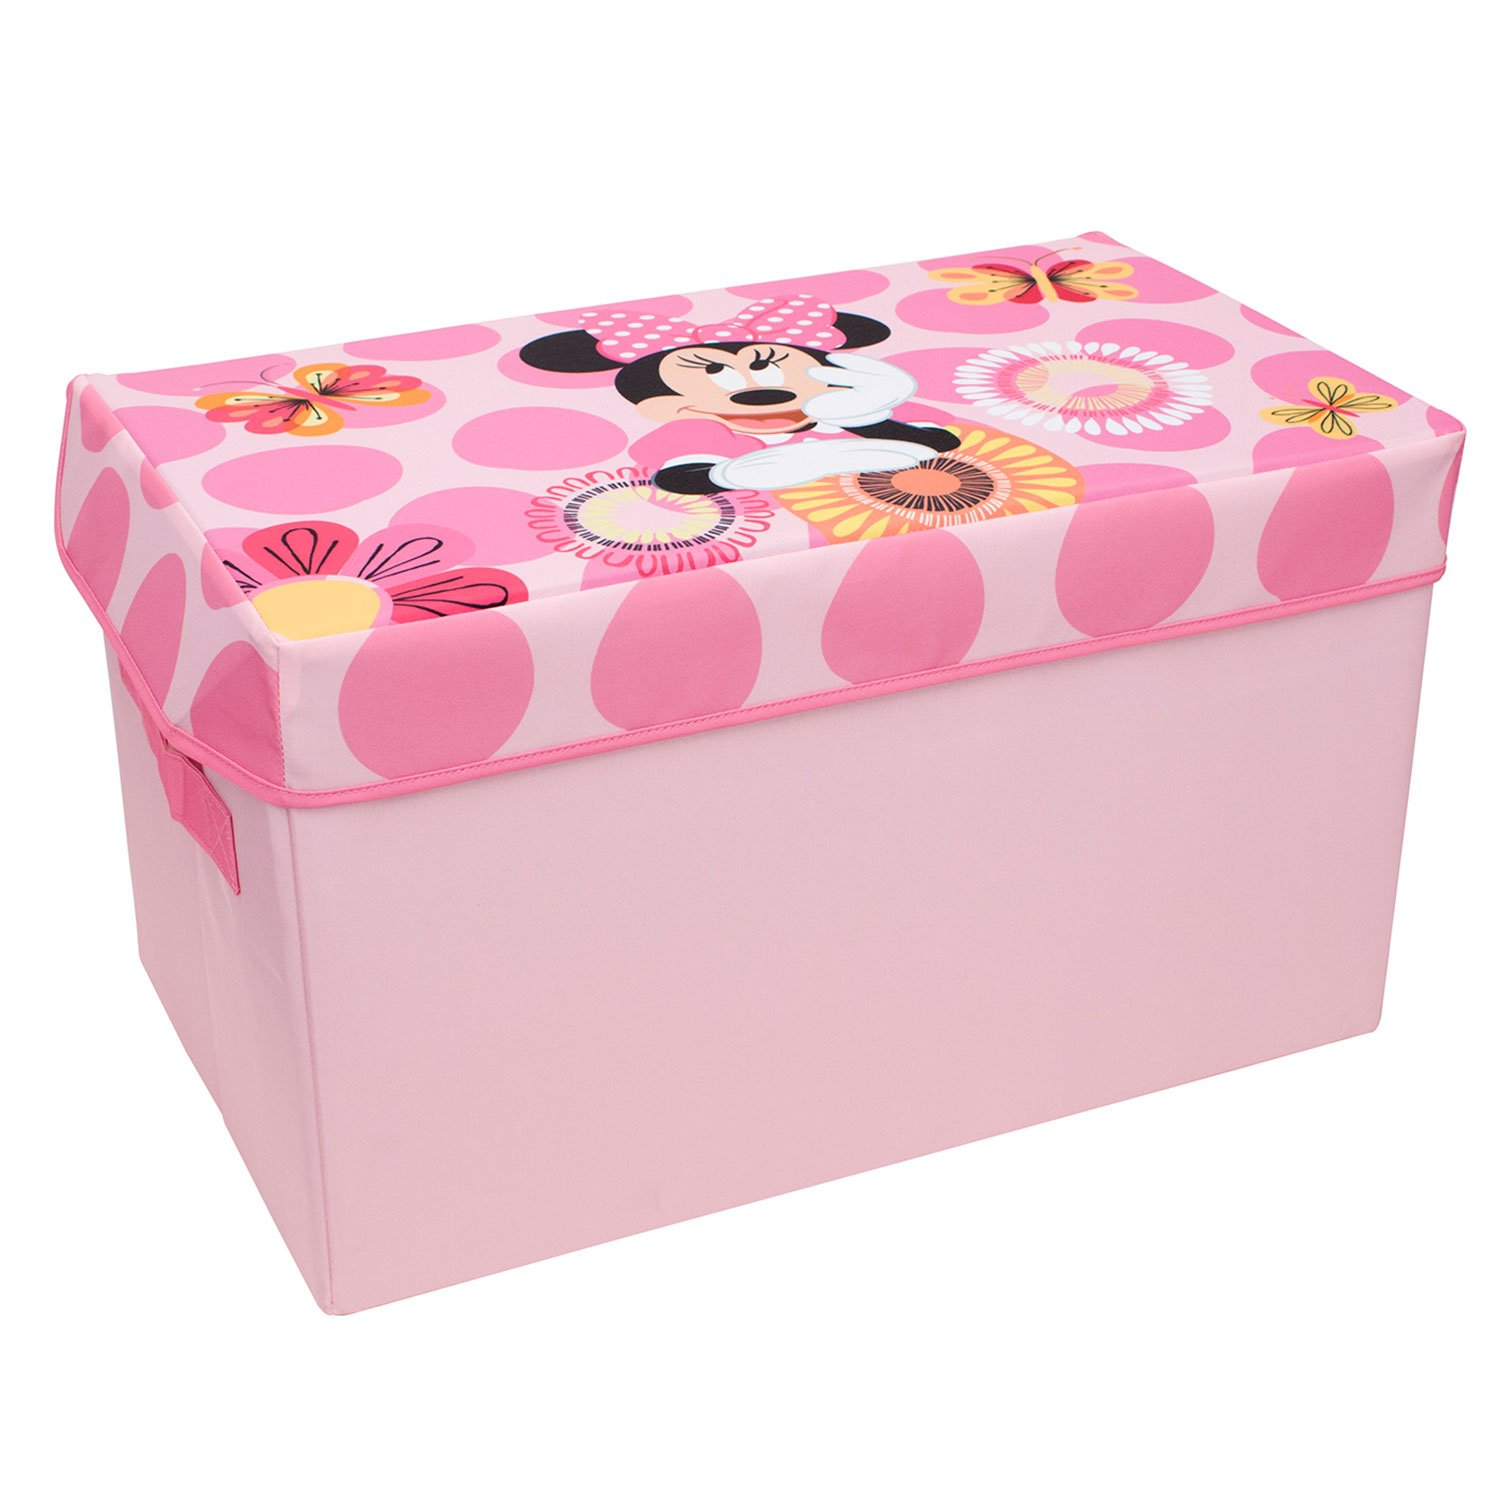 Minnie Mouse Collapsible KidsToy Storage Chest by Disney - Flip-Top Toy Organizer Bin for Closets, Kids Bedroom, Boys & Girls Toys - Foldable Toy Basket Organizer with Strong Handles & Design by Everything Mary